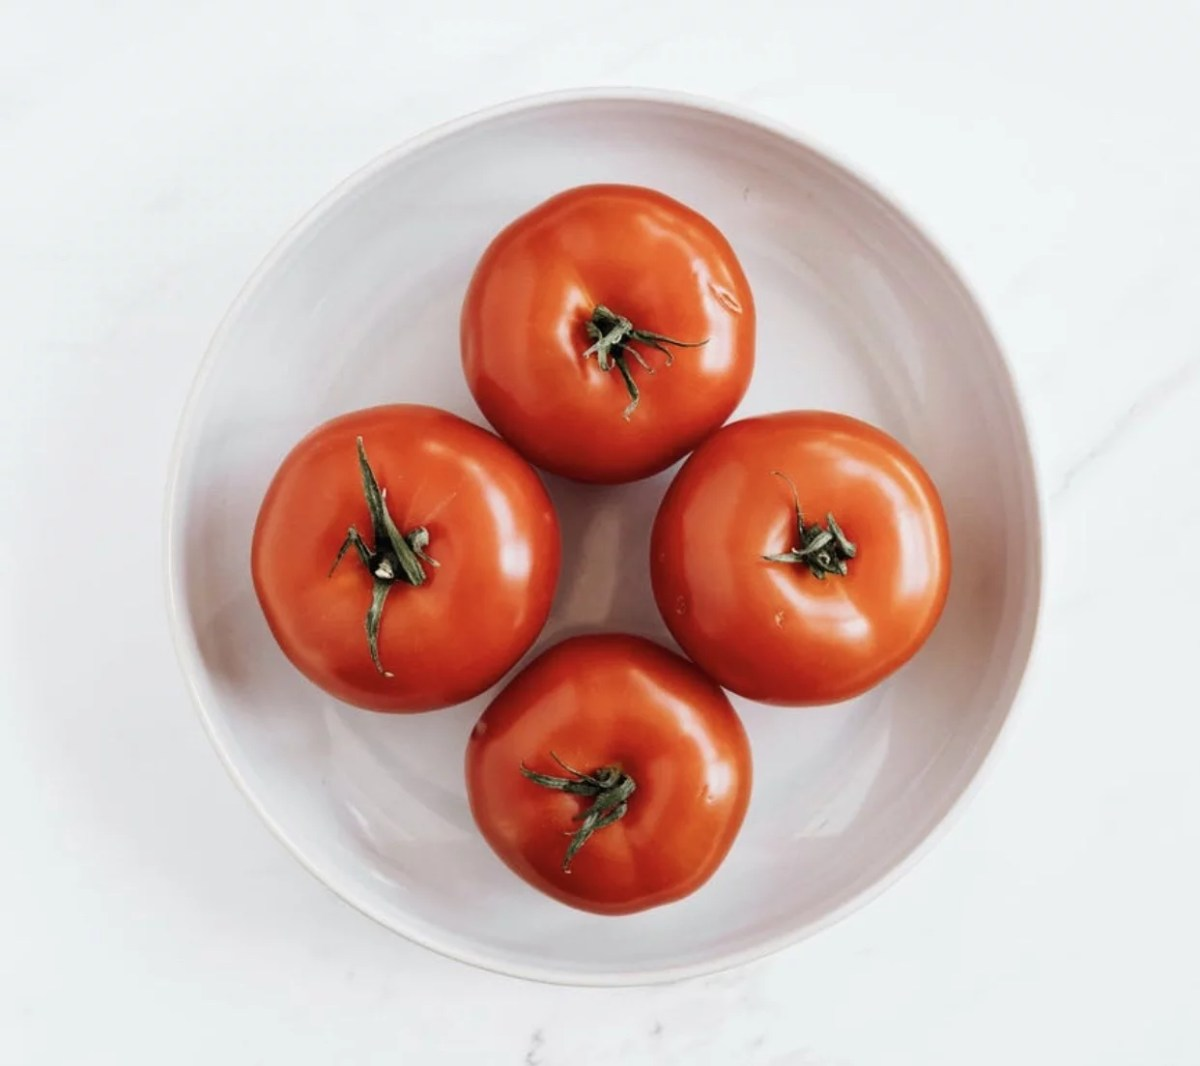 12 Serious Side Effects of Eating Tomatoes.